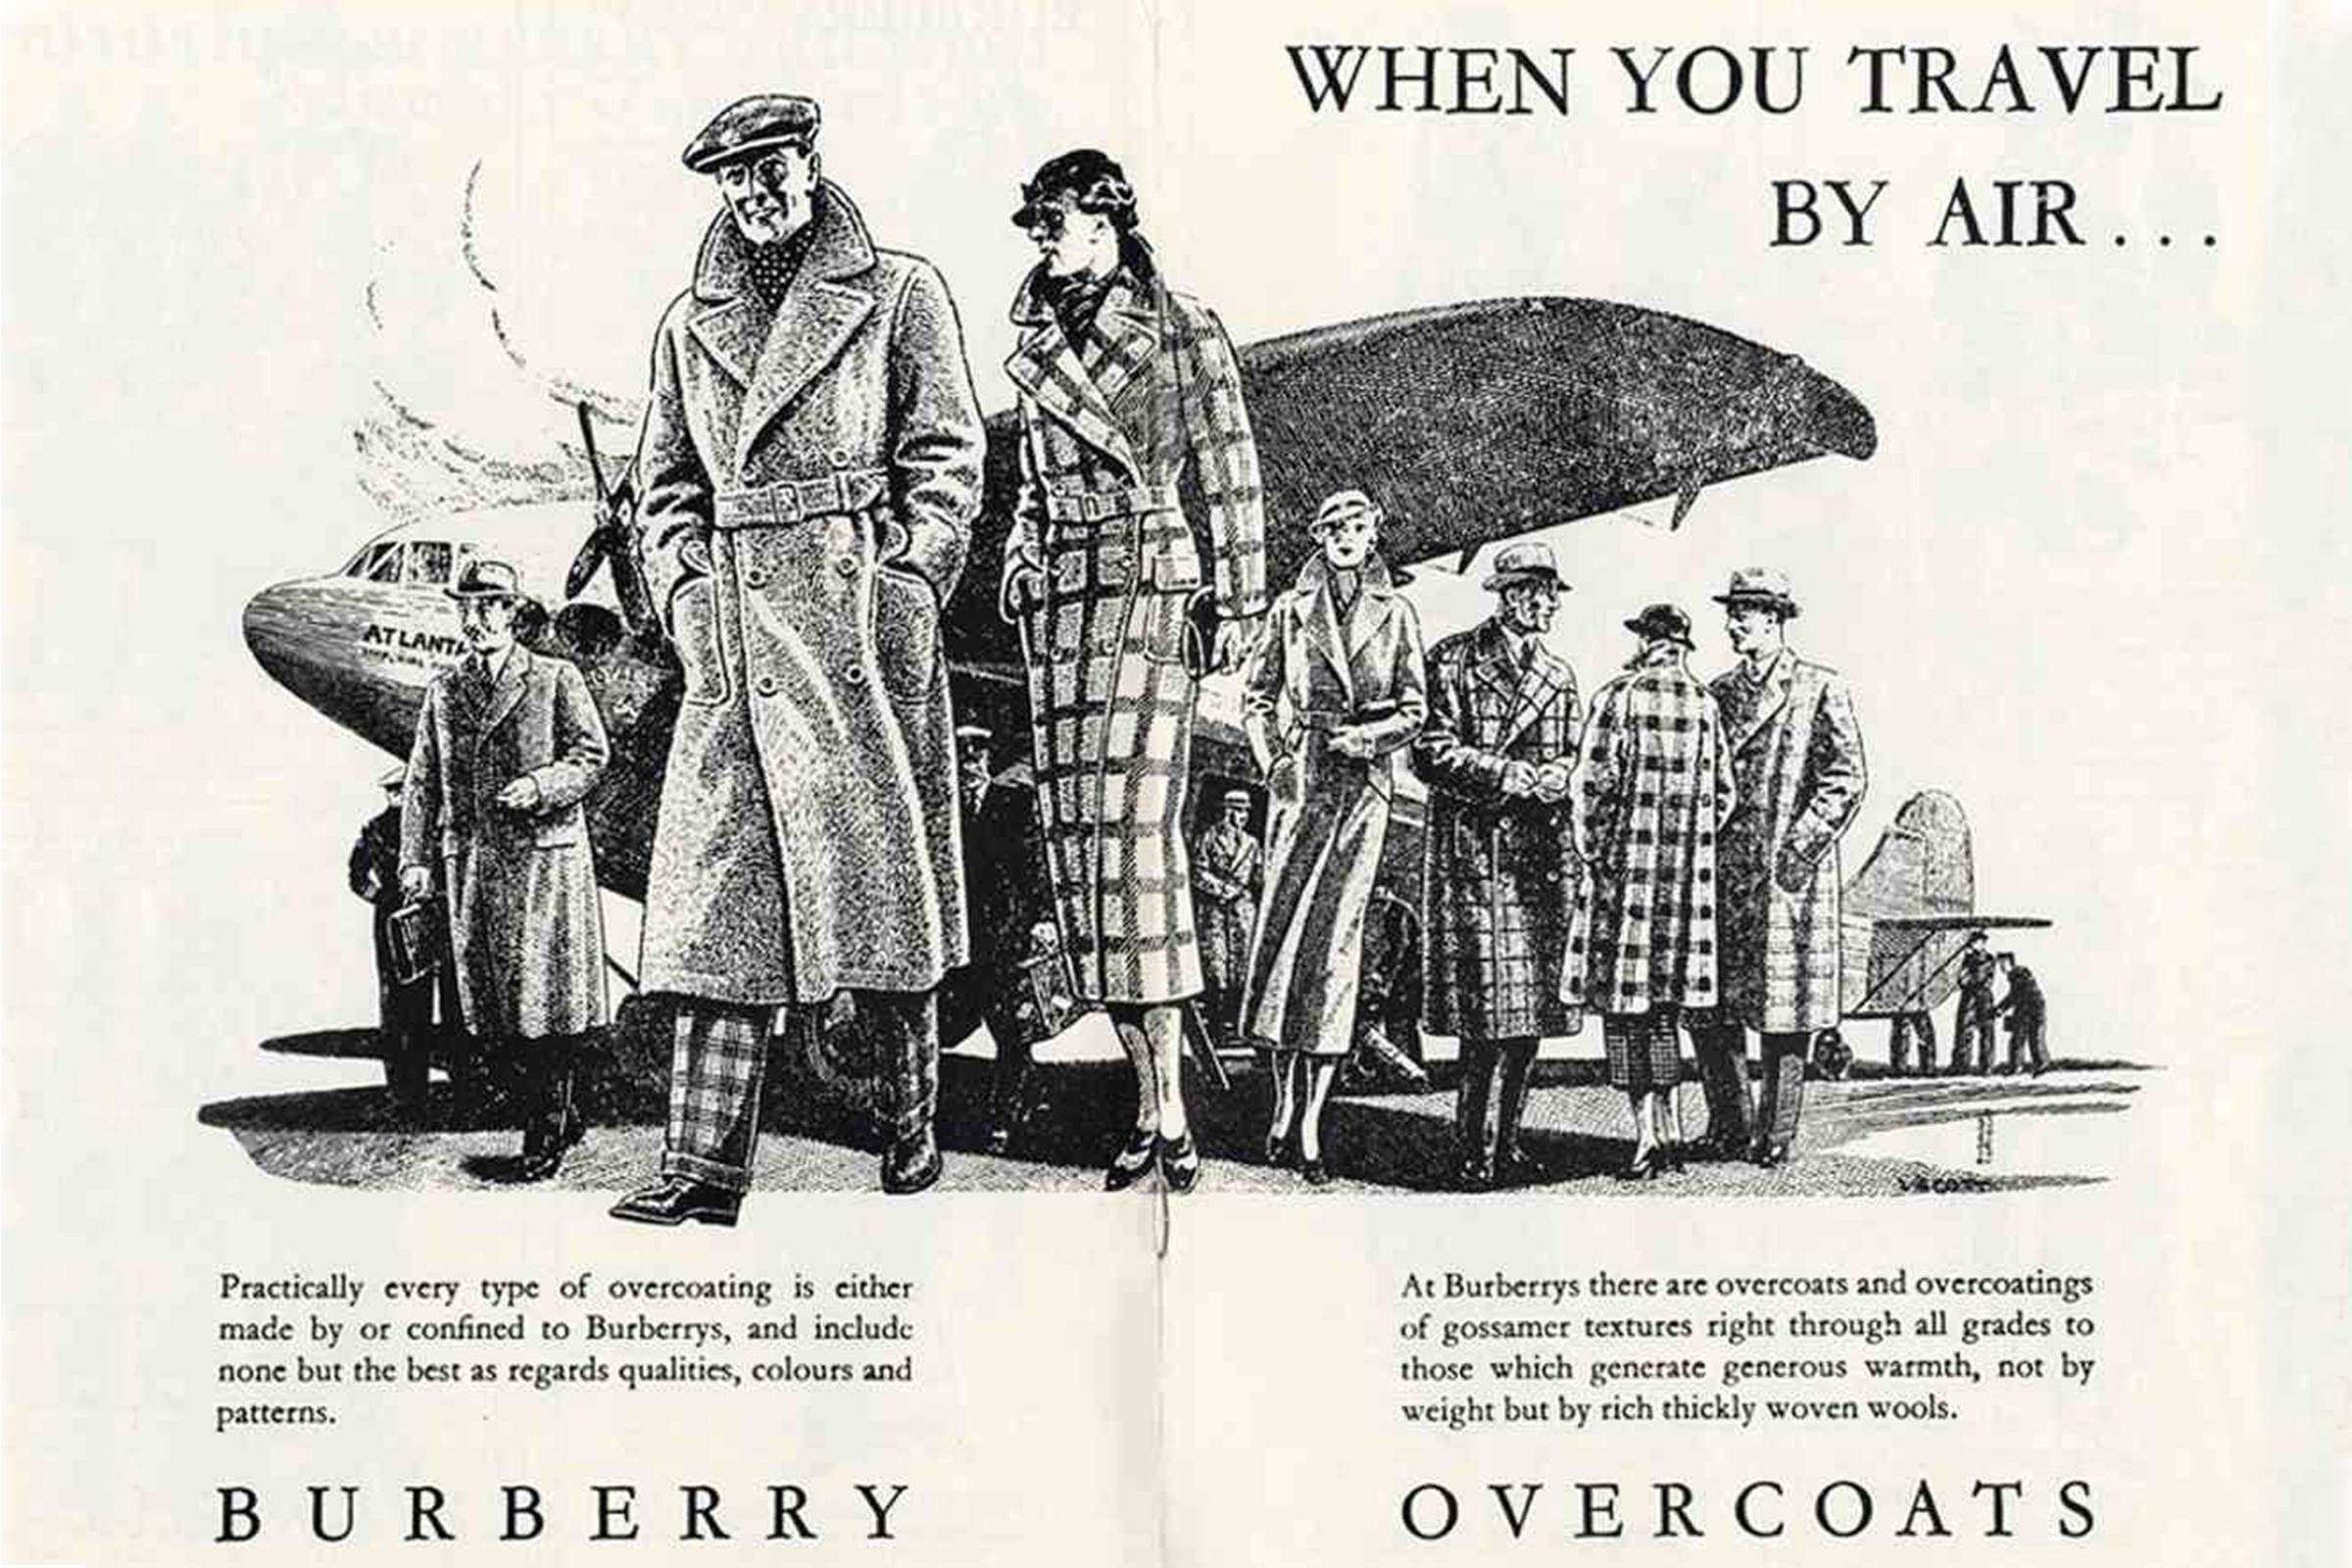 A Burberry trenchcoat advertisement circa WWI-era